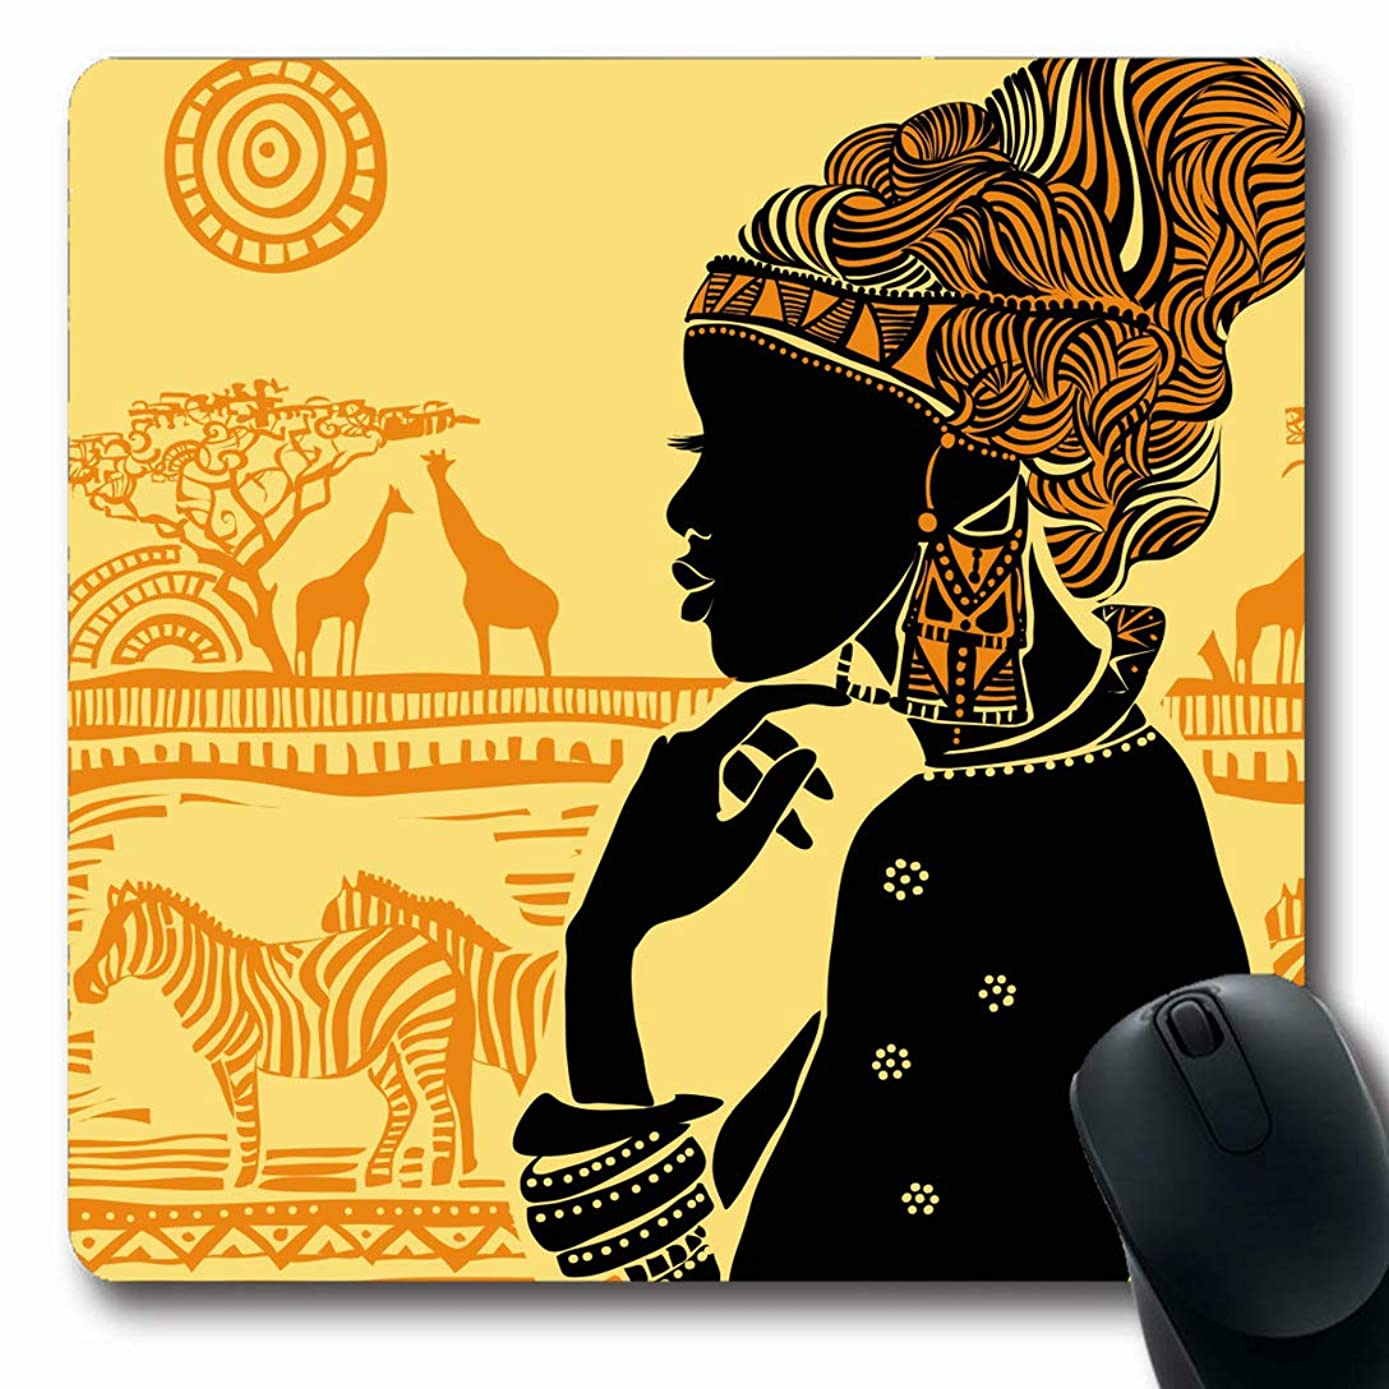 Ahawoso Mousepads for Computers Africa America African Against Earrings Tribe South Zebra American Design Cult Oblong Shape 7.9 x 9.5 Inches Non-Slip Oblong Gaming Mouse Pad